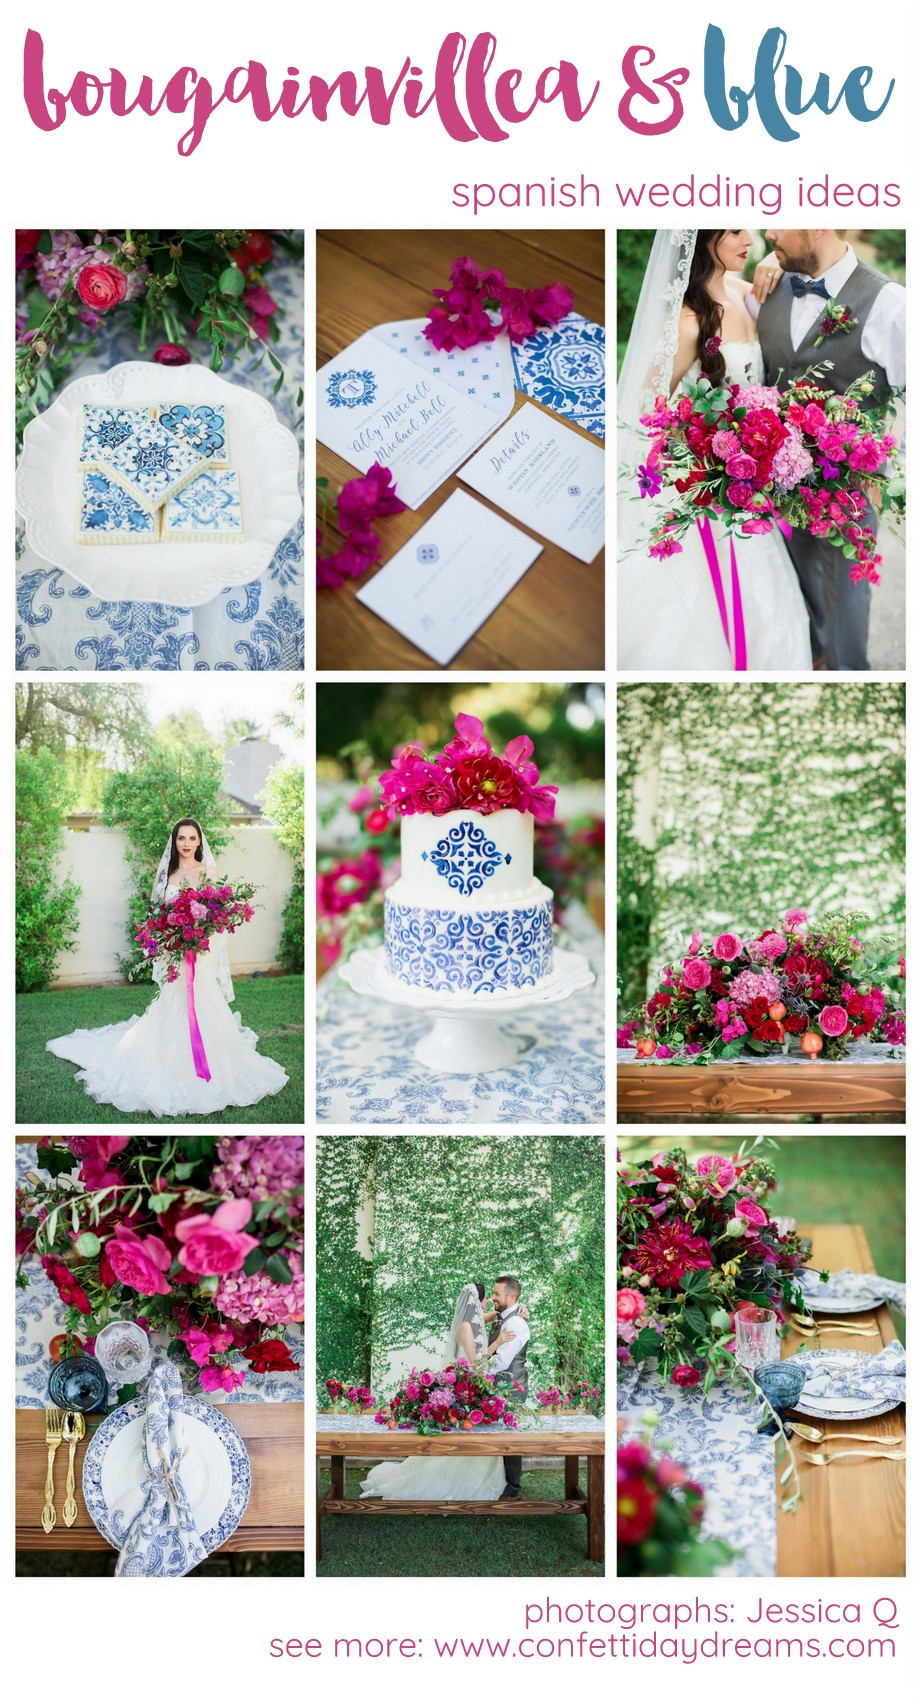 Bougainvillea and Blue Spanish Ceramic Wedding Ideas